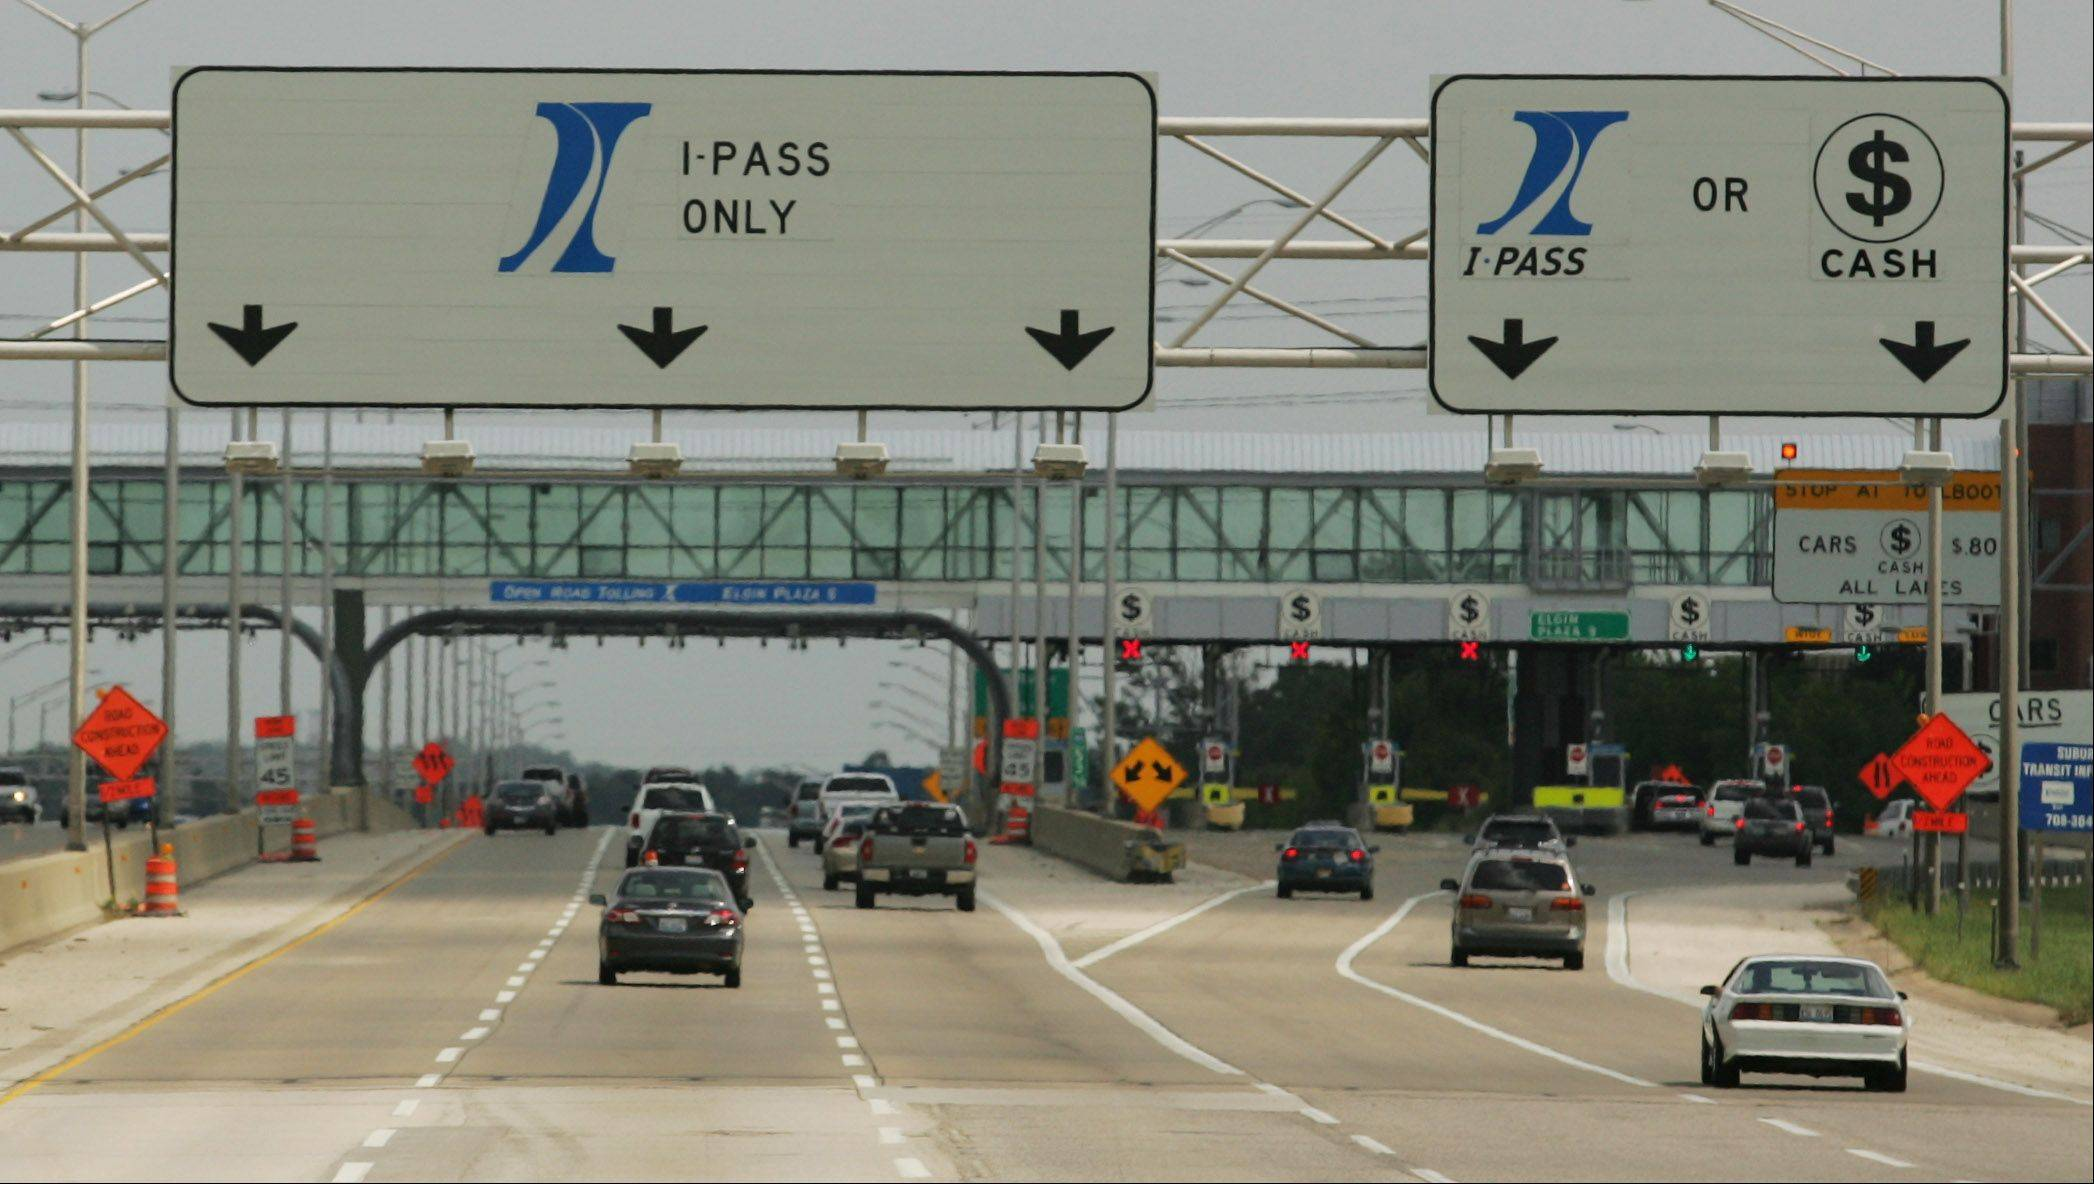 I-PASS users will be paying more if the Illinois tollway board approves a rate increase this week.